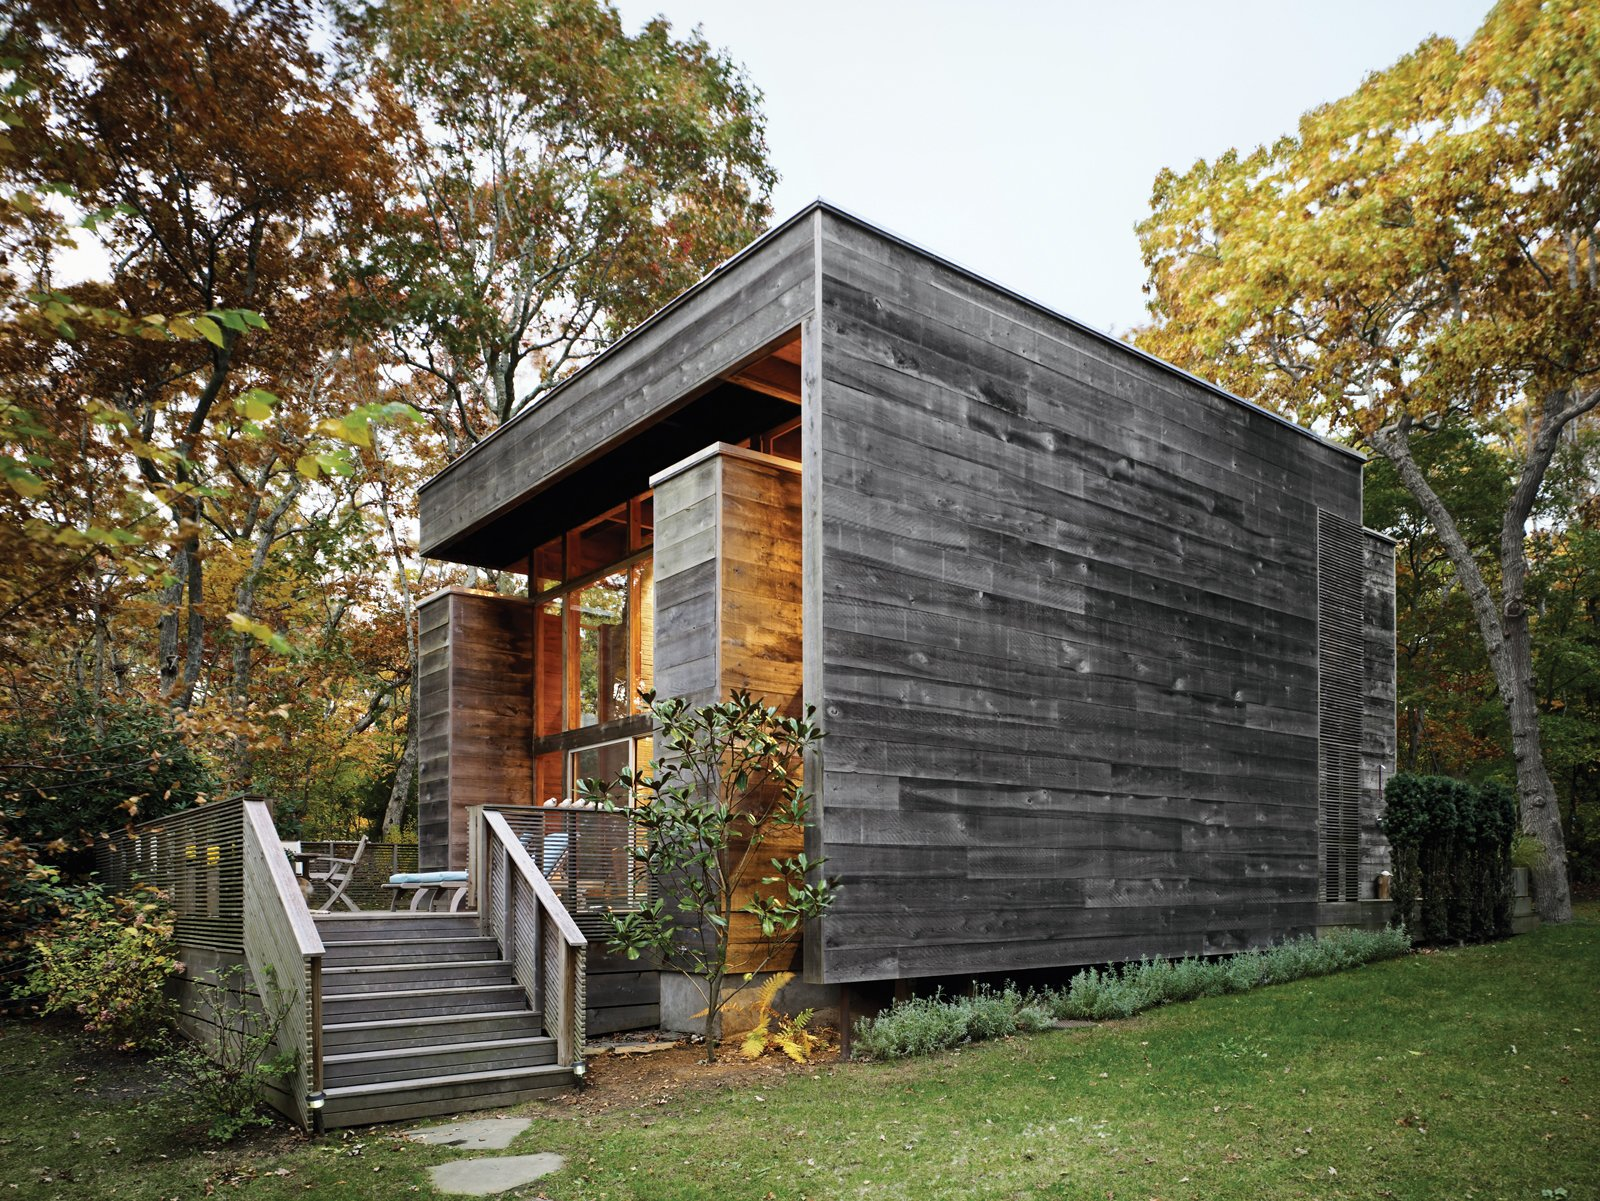 Exterior, House Building Type, Cabin Building Type, Wood Siding Material, and Flat RoofLine Bates Masi's renovation and expansion of Harry Bates's 1967 house in Amagansett, New York, salvaged much of the home's original cypress decking and incorporated subtle additions to the exterior. Because cypress quickly develops a patina, it was only a matter of weeks before the new facade matched the color of the original wood siding. Photo by Raimund Koch.  Photo 1 of 17 in Long Island Summer Home Gets a Modern Addition